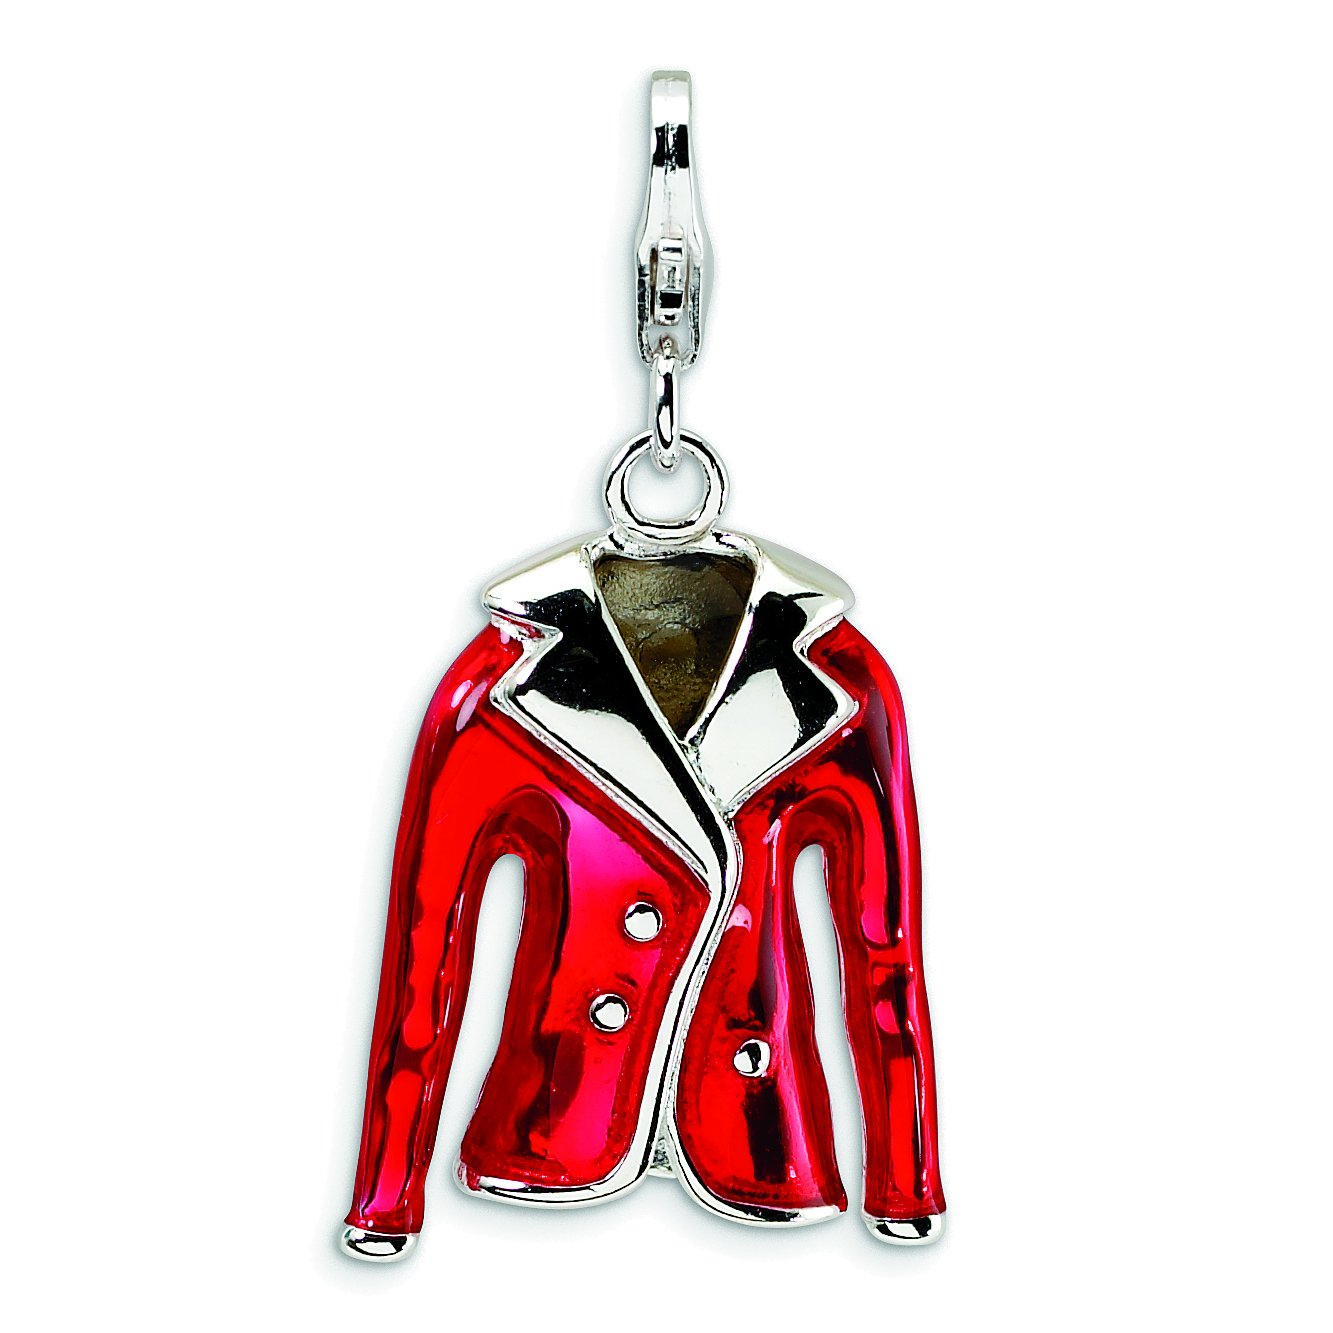 Amore La Vita Sterling Silver 3-D Enameled Red Jacket with Lobster Clasp Charm